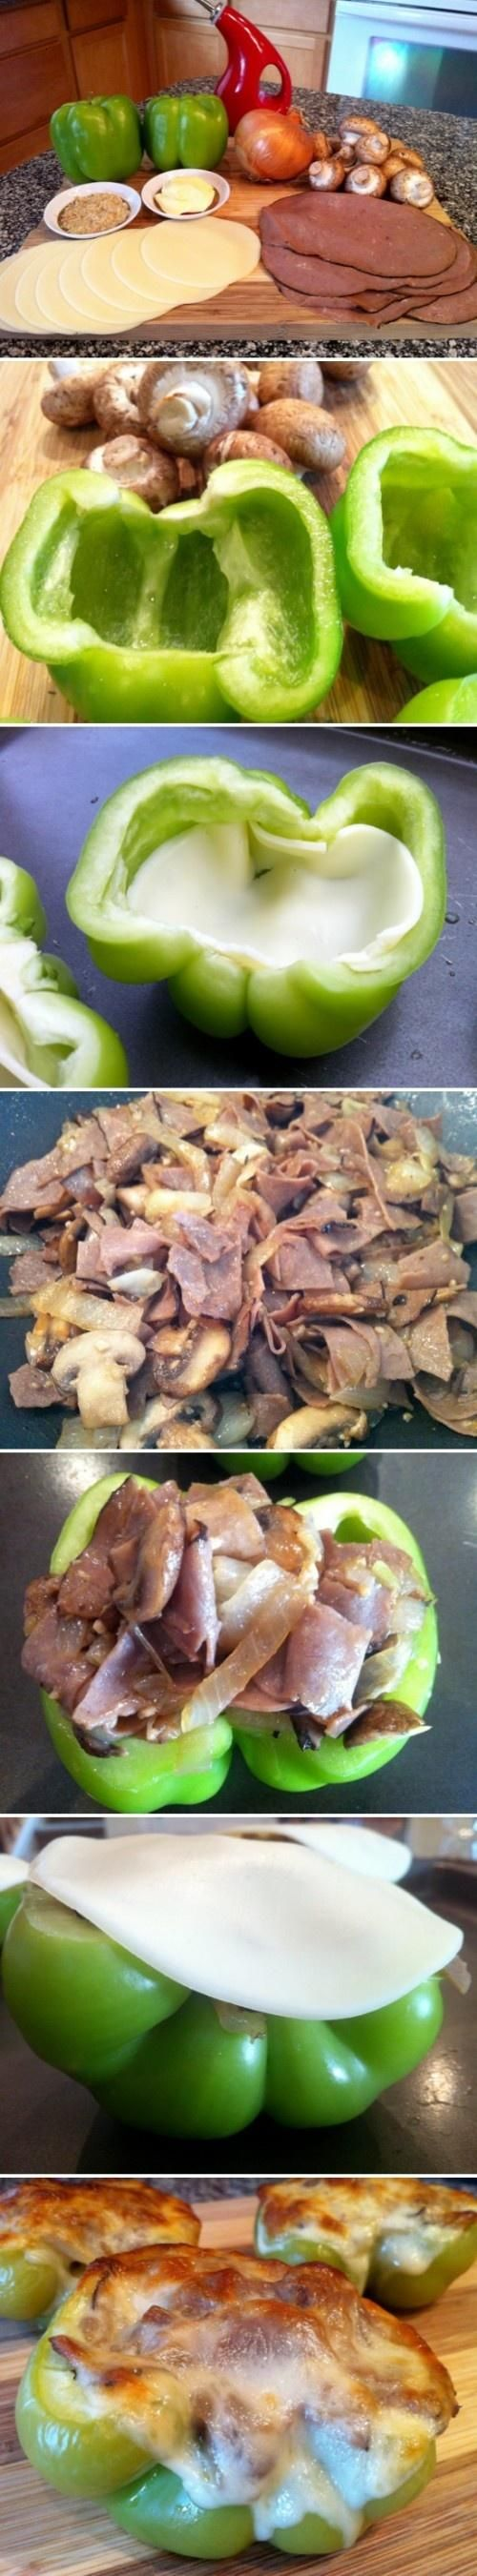 Skinny Philly Cheesesteak Stuffed Bell Peppers - Love with recipe